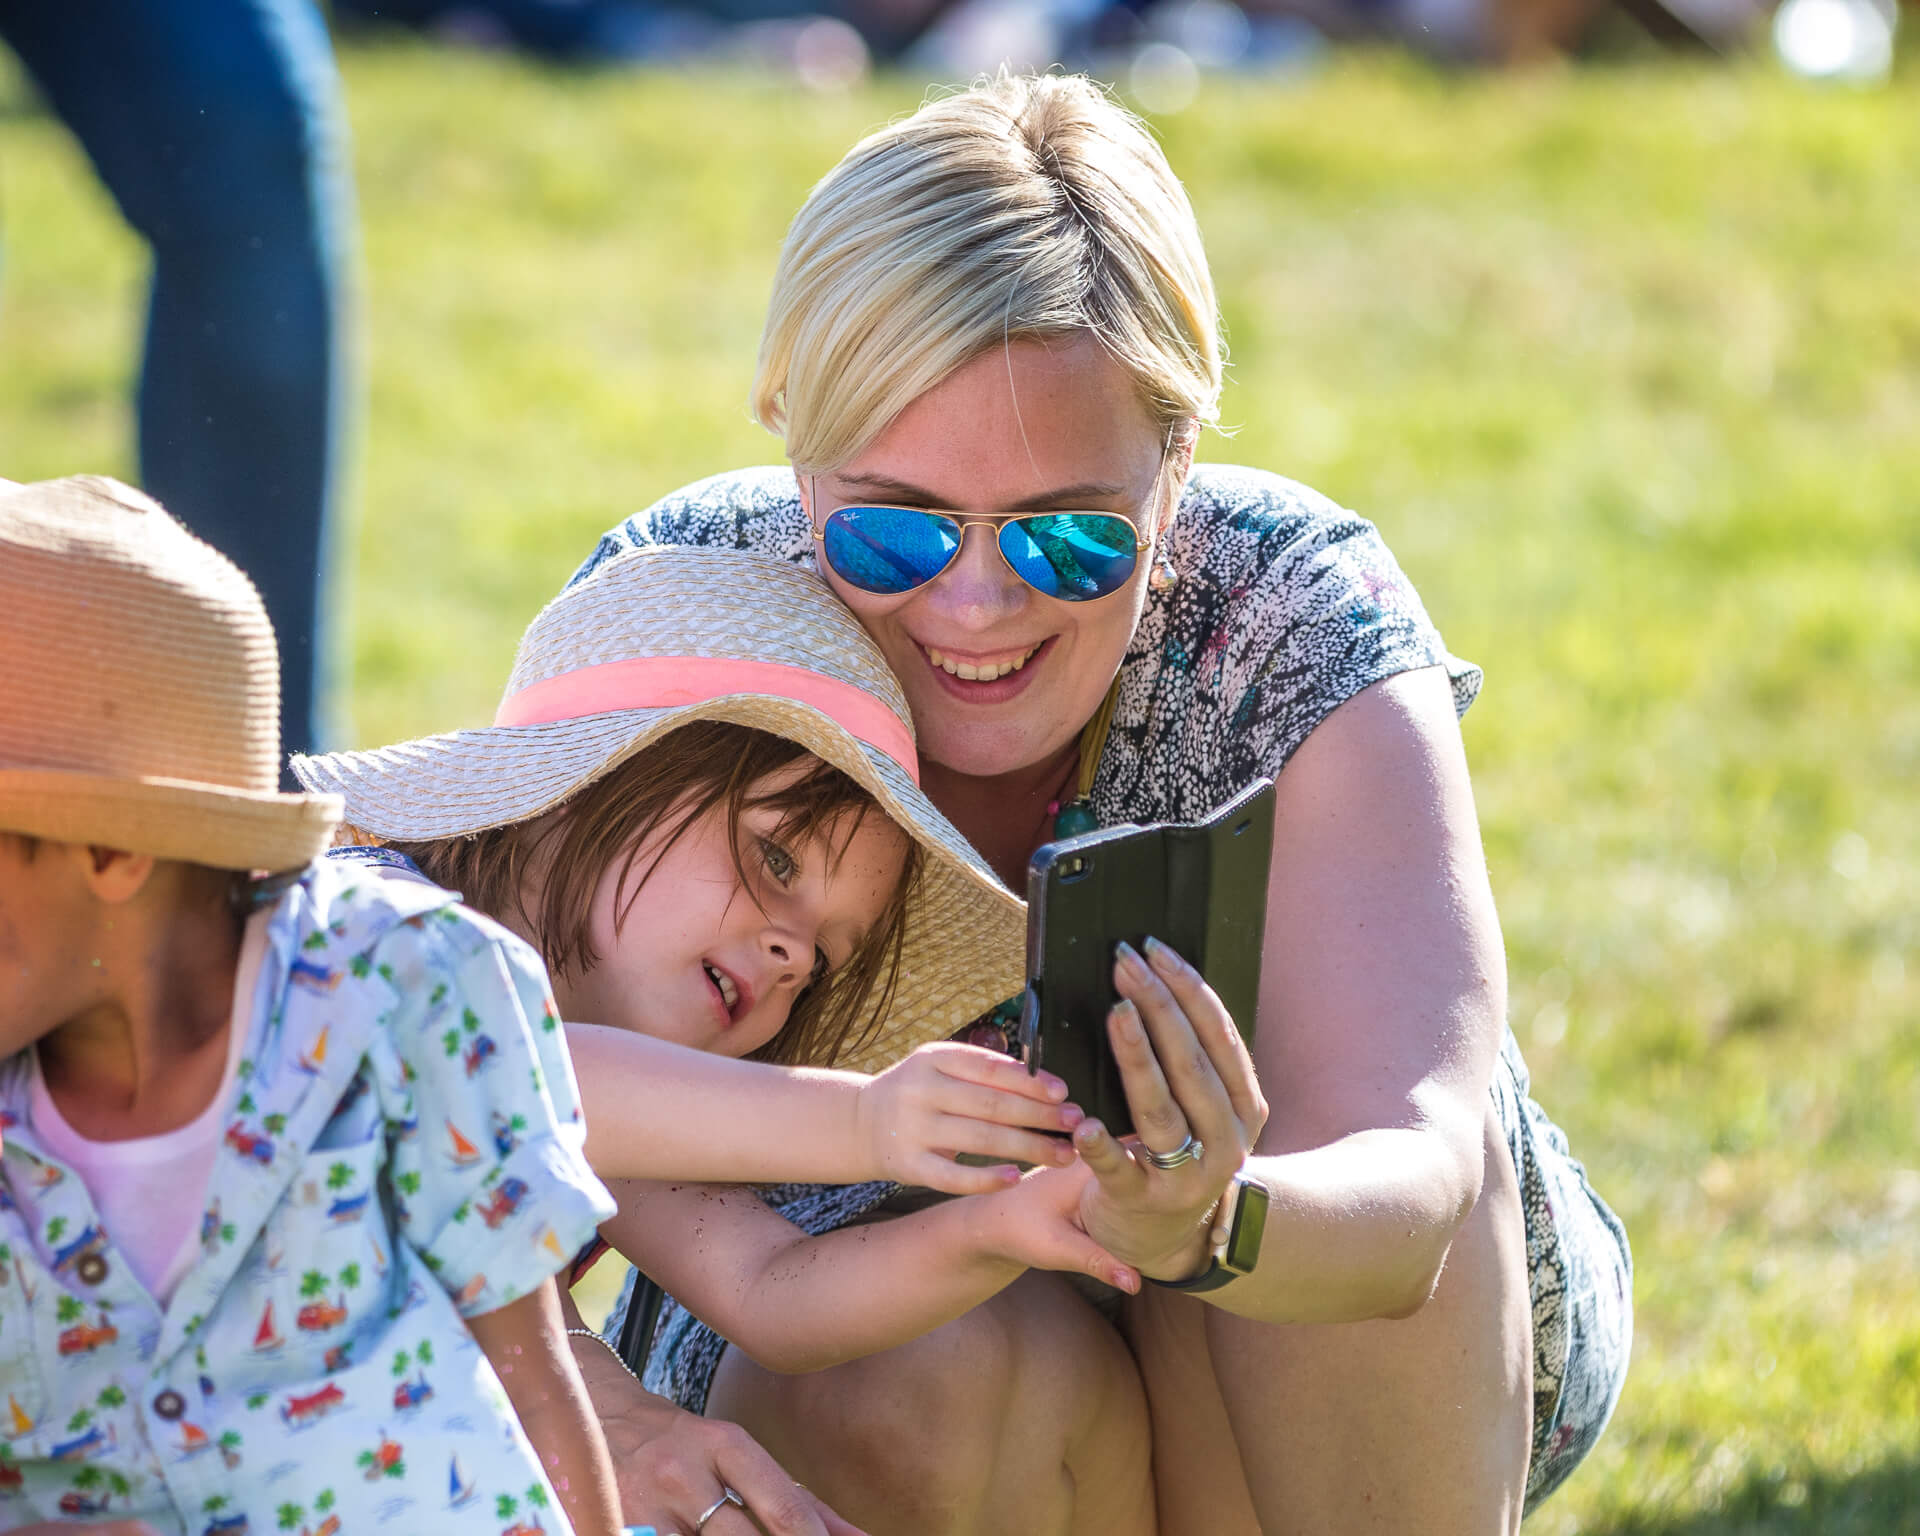 A close in shot of a short blonde haired Mother and 1 of her 3 children (who wears a floppy sun hat), seen here in colour at Mantonfest in 2019. The child is leaning over towards her Mother (who is in a squatting position next to her), as she try's to look at the screen of her Mothers mobile phone.